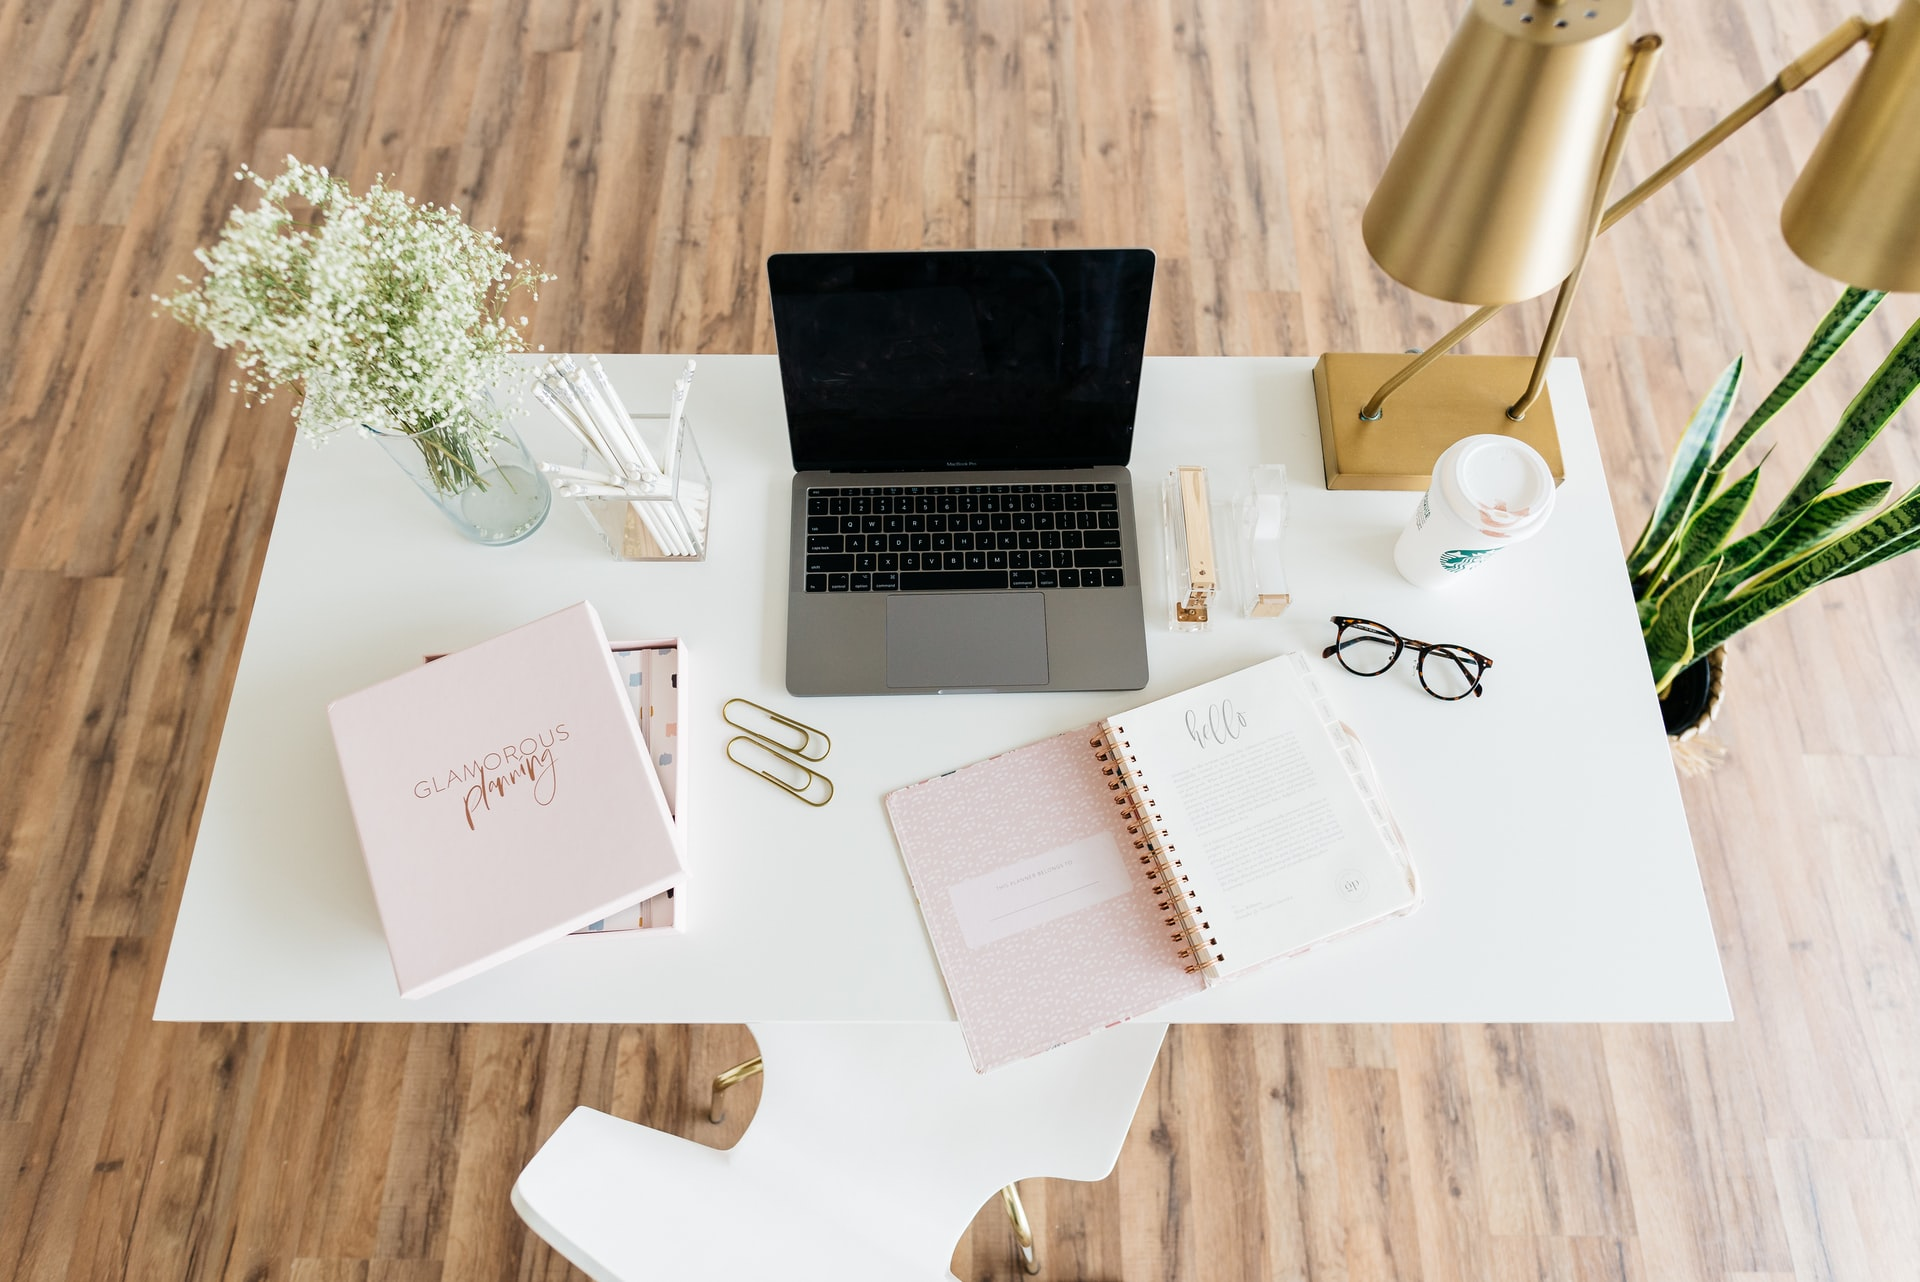 8 Productivity-Boosting, Work-From-Home Gift Ideas For Christmas